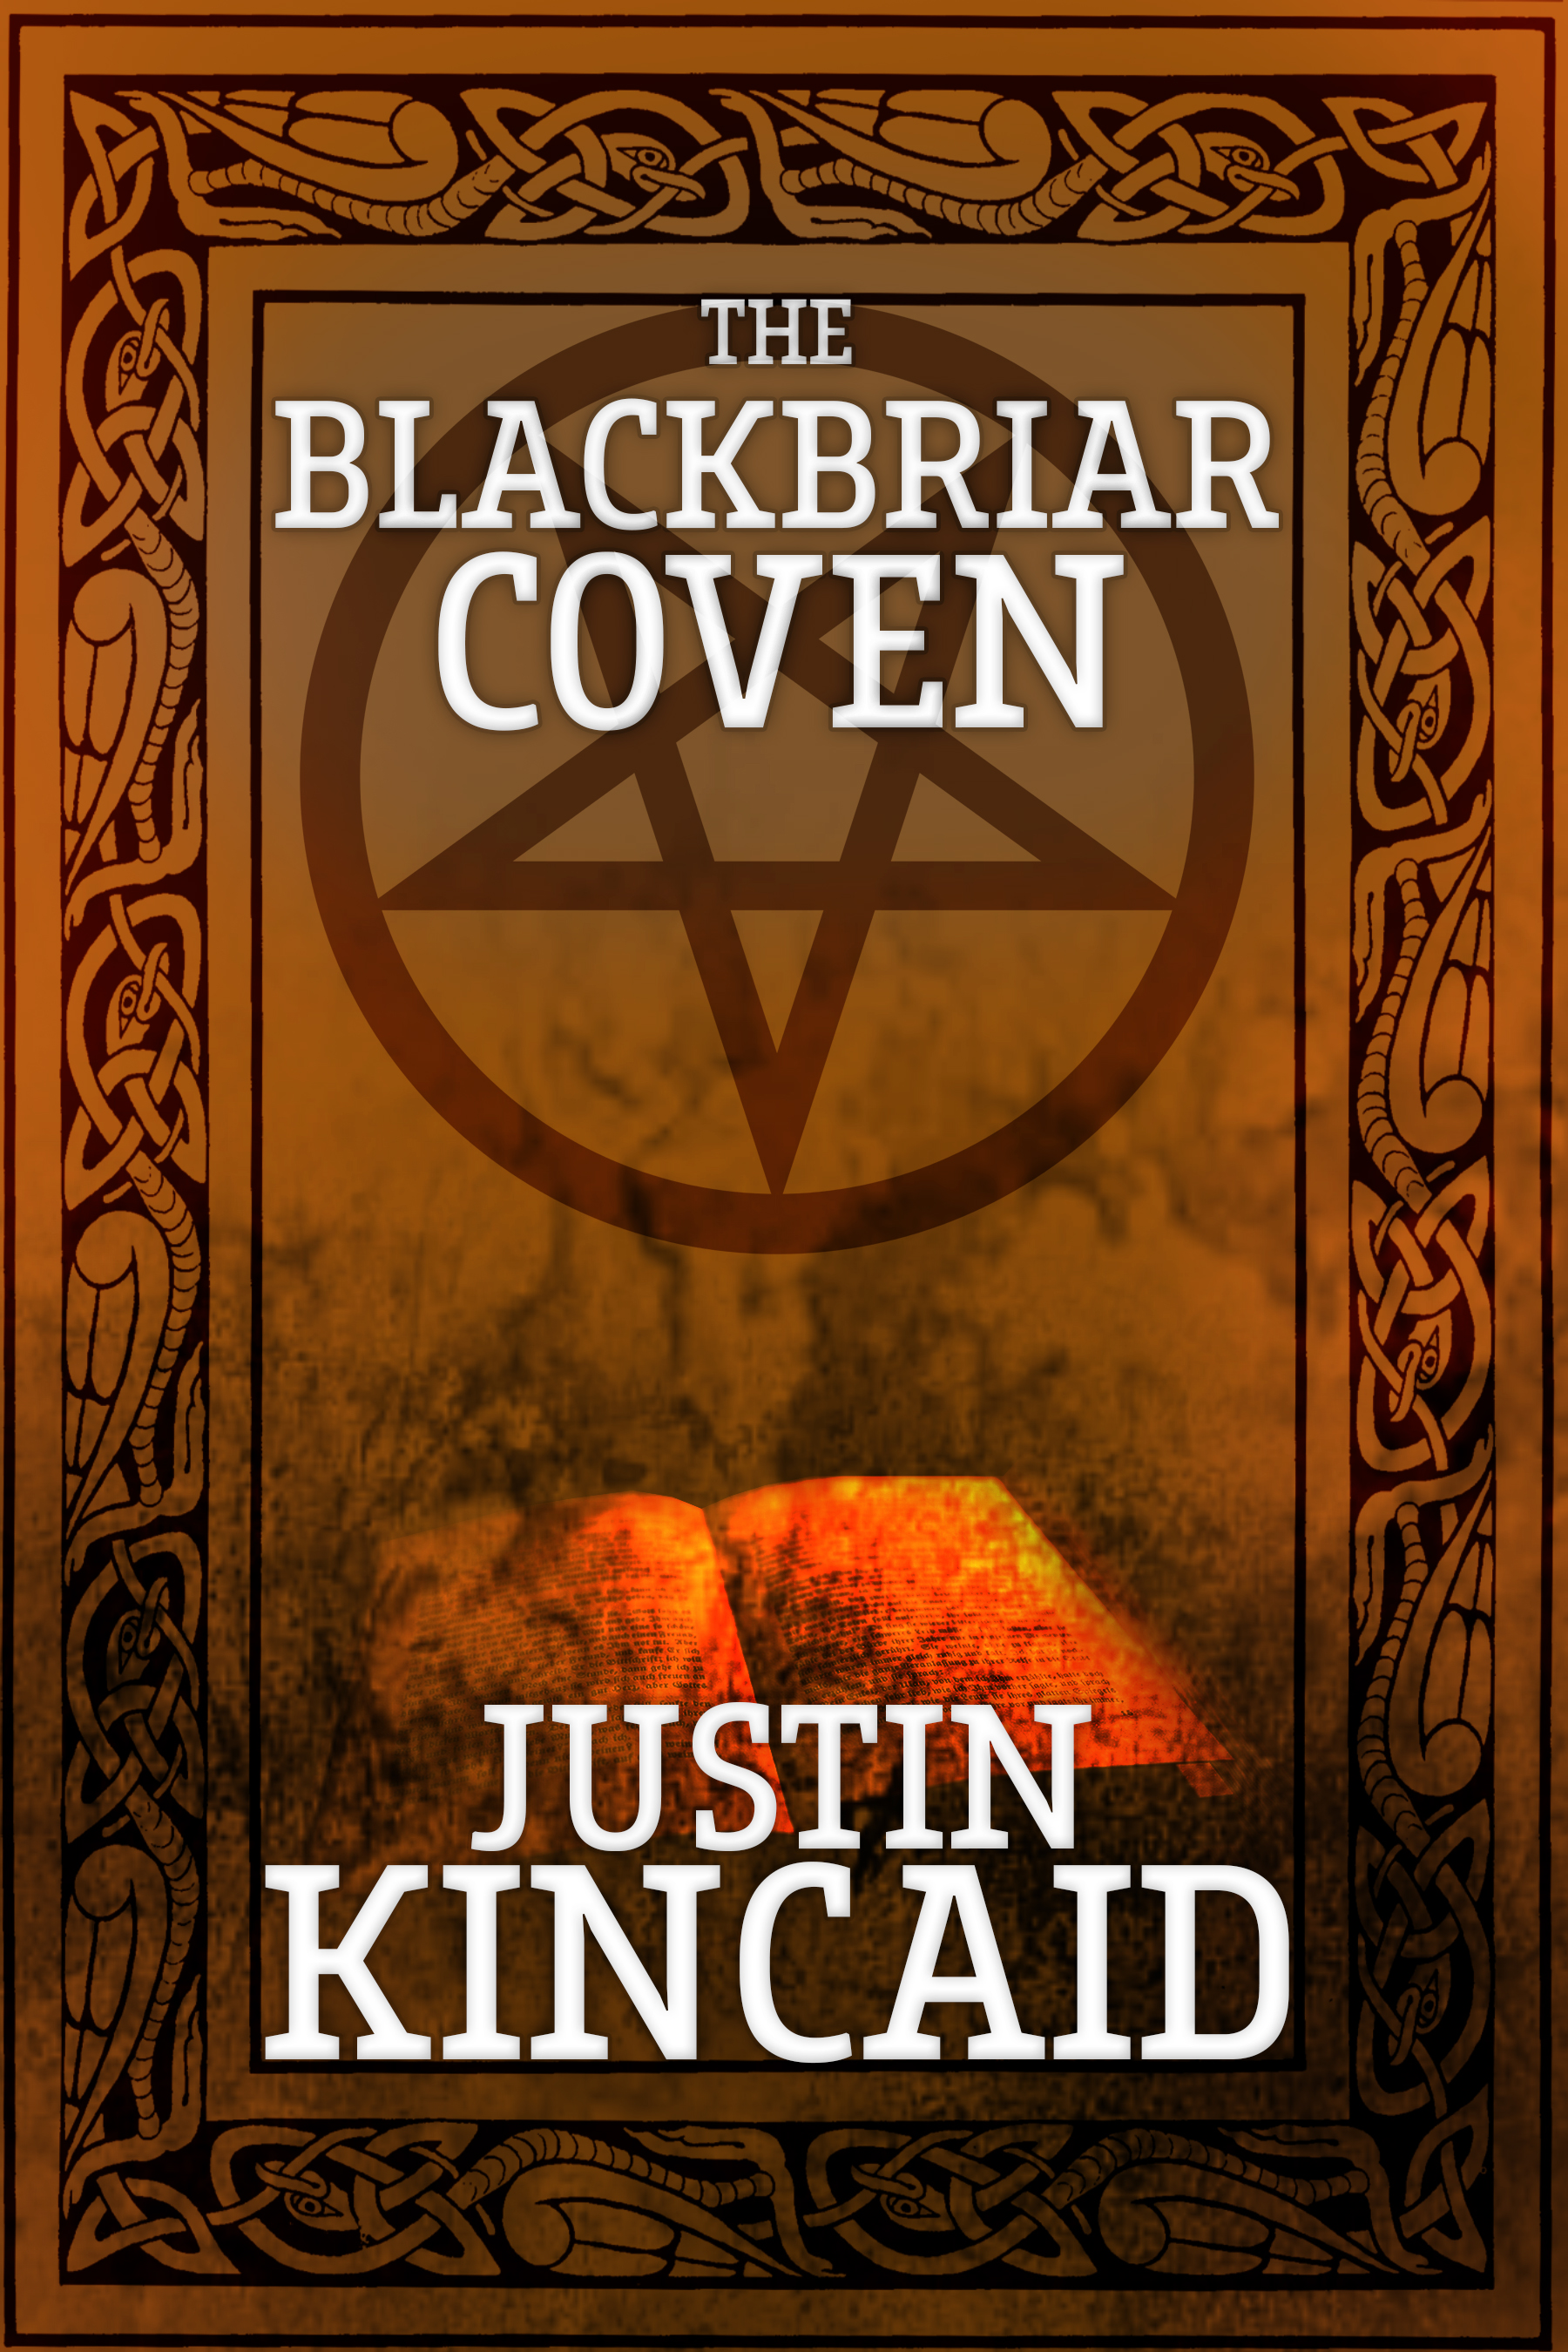 The Blackbriar Coven